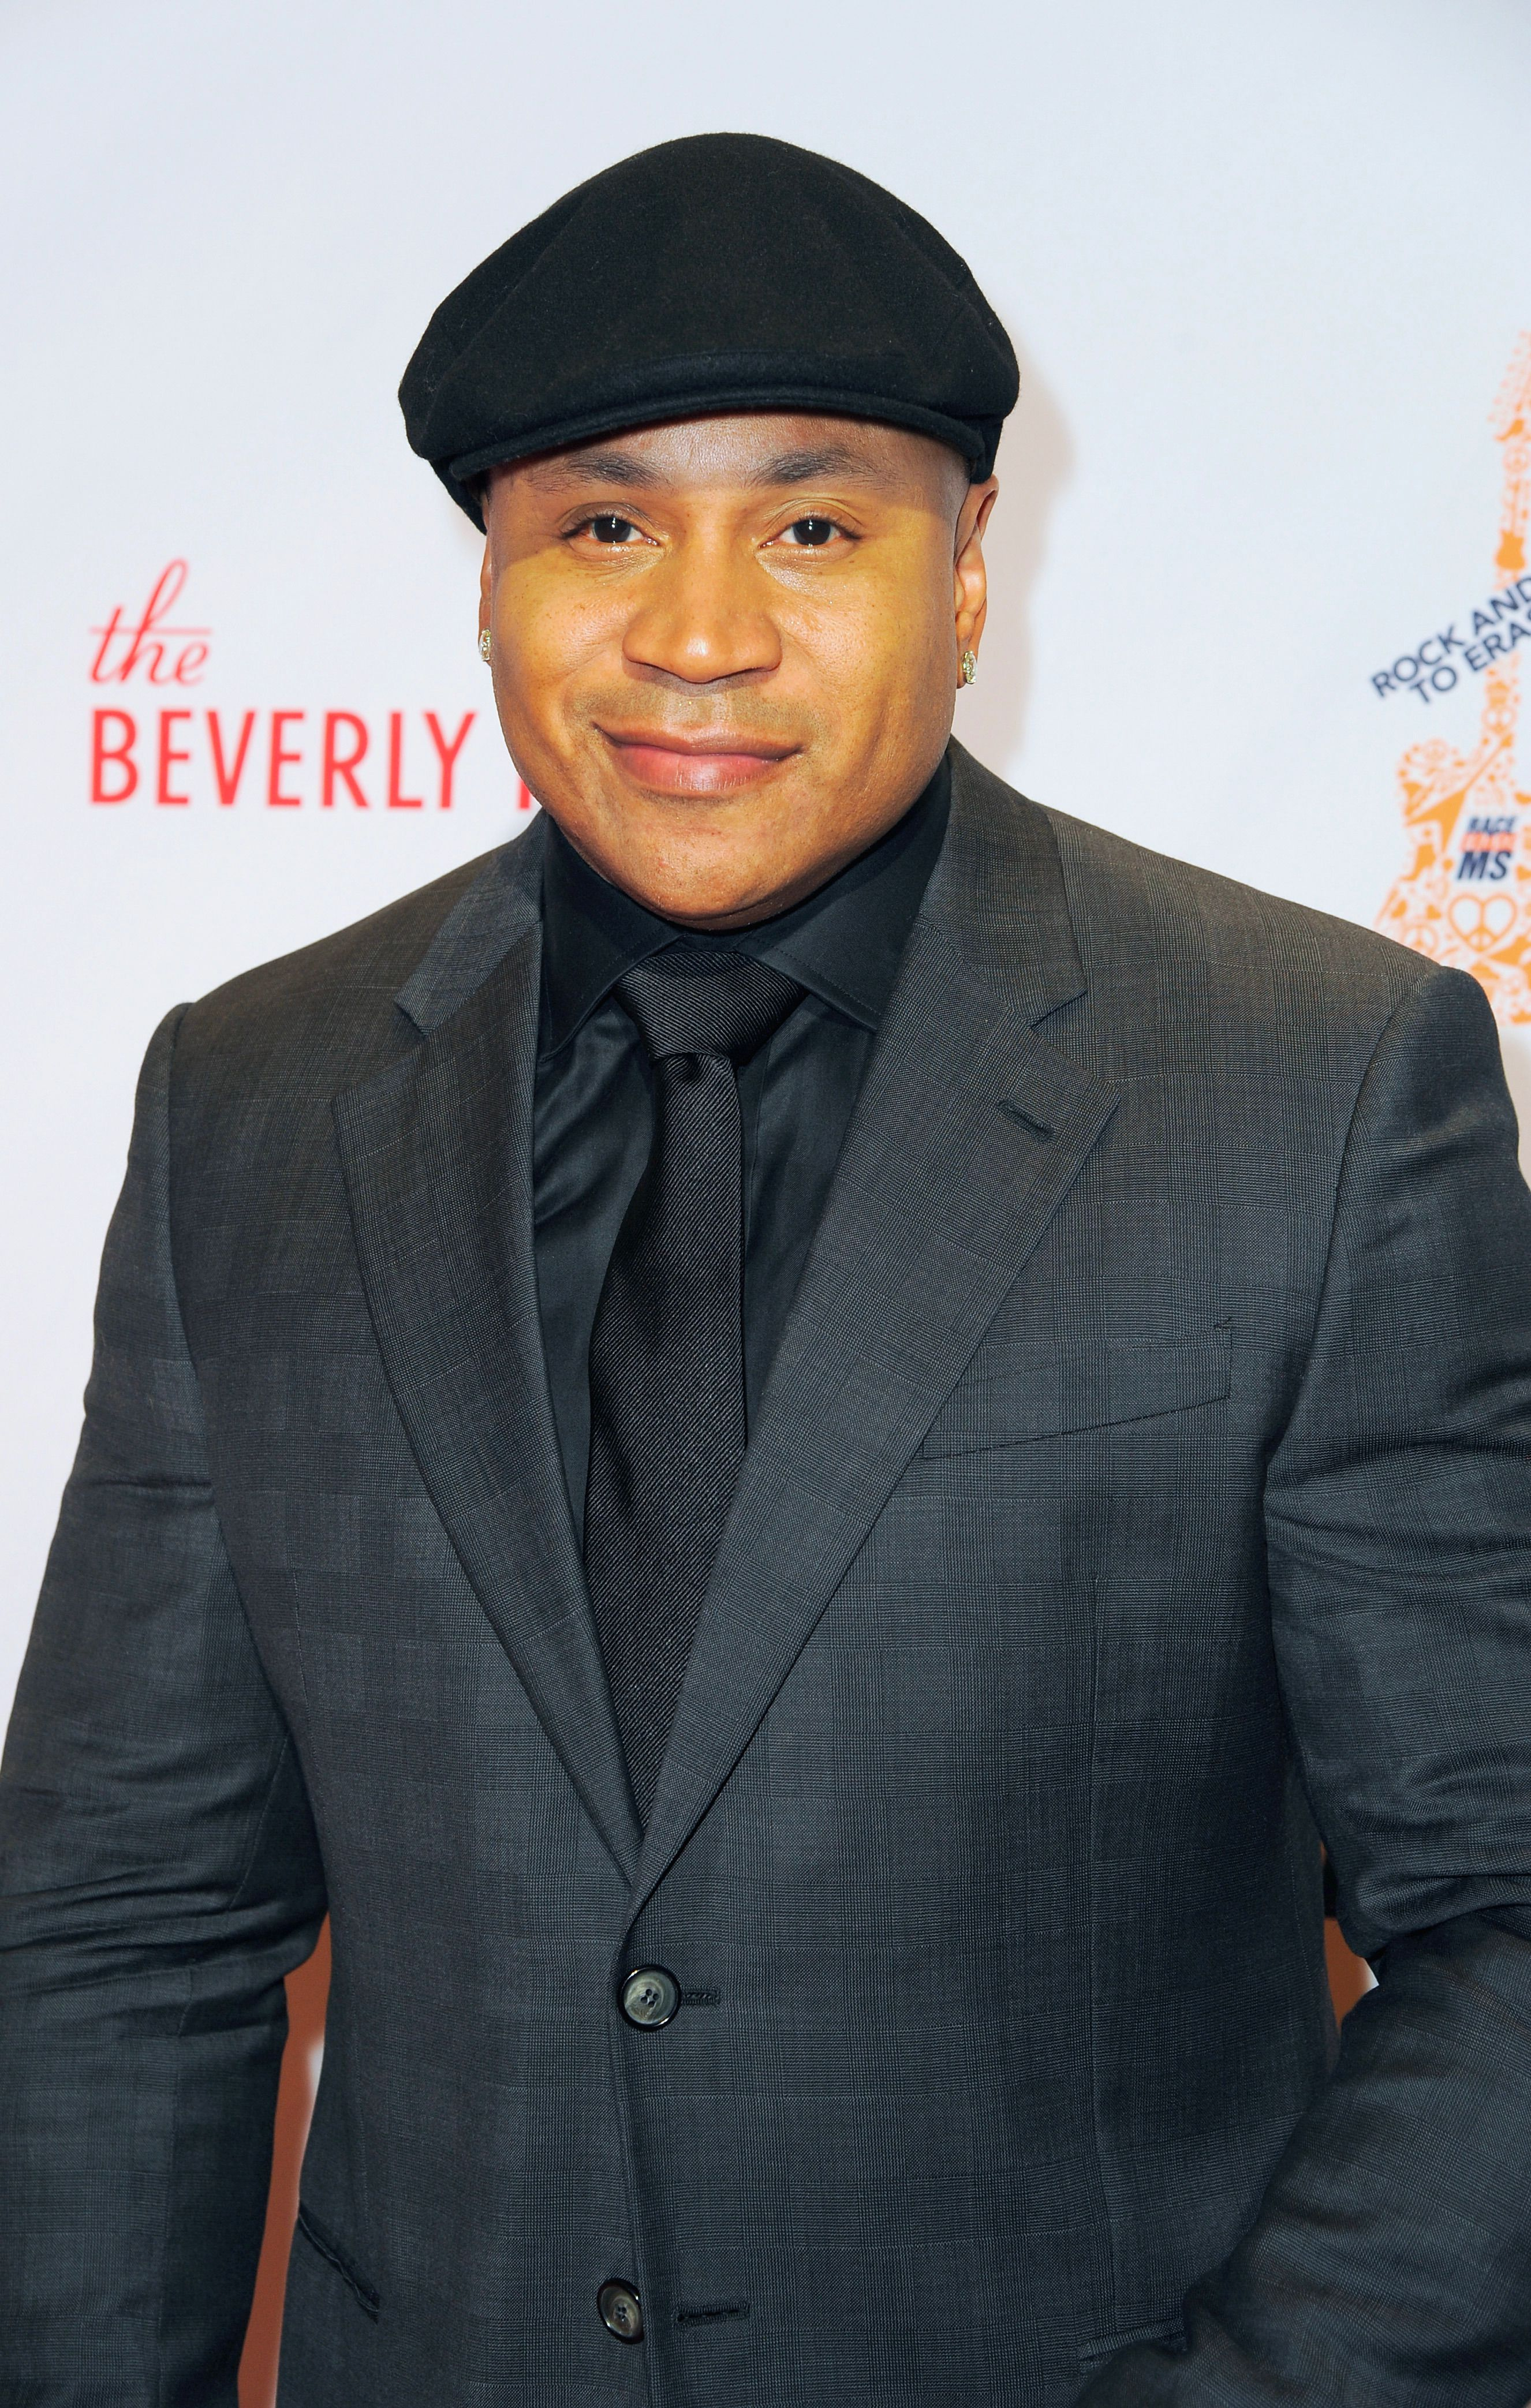 Actor and rapper LL Cool J on April 15, 2016 in Beverly Hills, California.